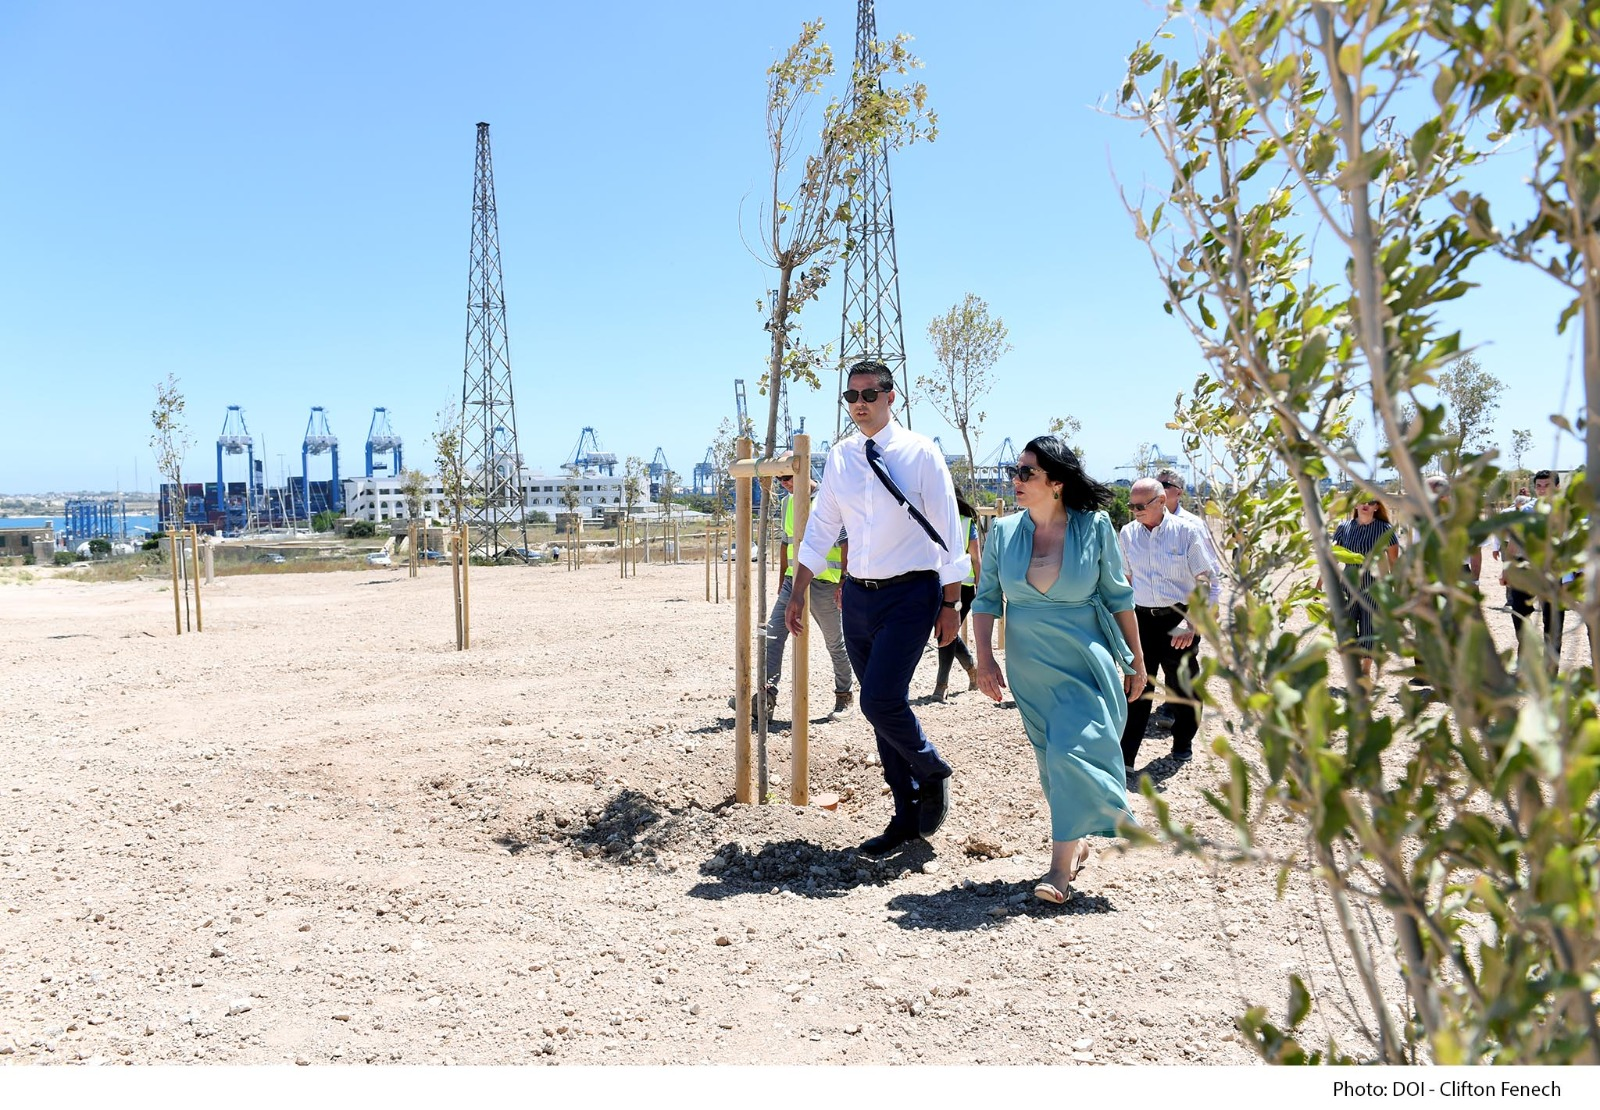 PRESS RELEASE BY THE MINISTRY FOR TOURISM AND CONSUMER PROTECTION AND BY THE MINISTRY FOR TRANSPORT, INFRASTRUCTURE AND CAPITAL PROJECTS  More than 2,200 trees planted in the new family park in Birżebbuġa